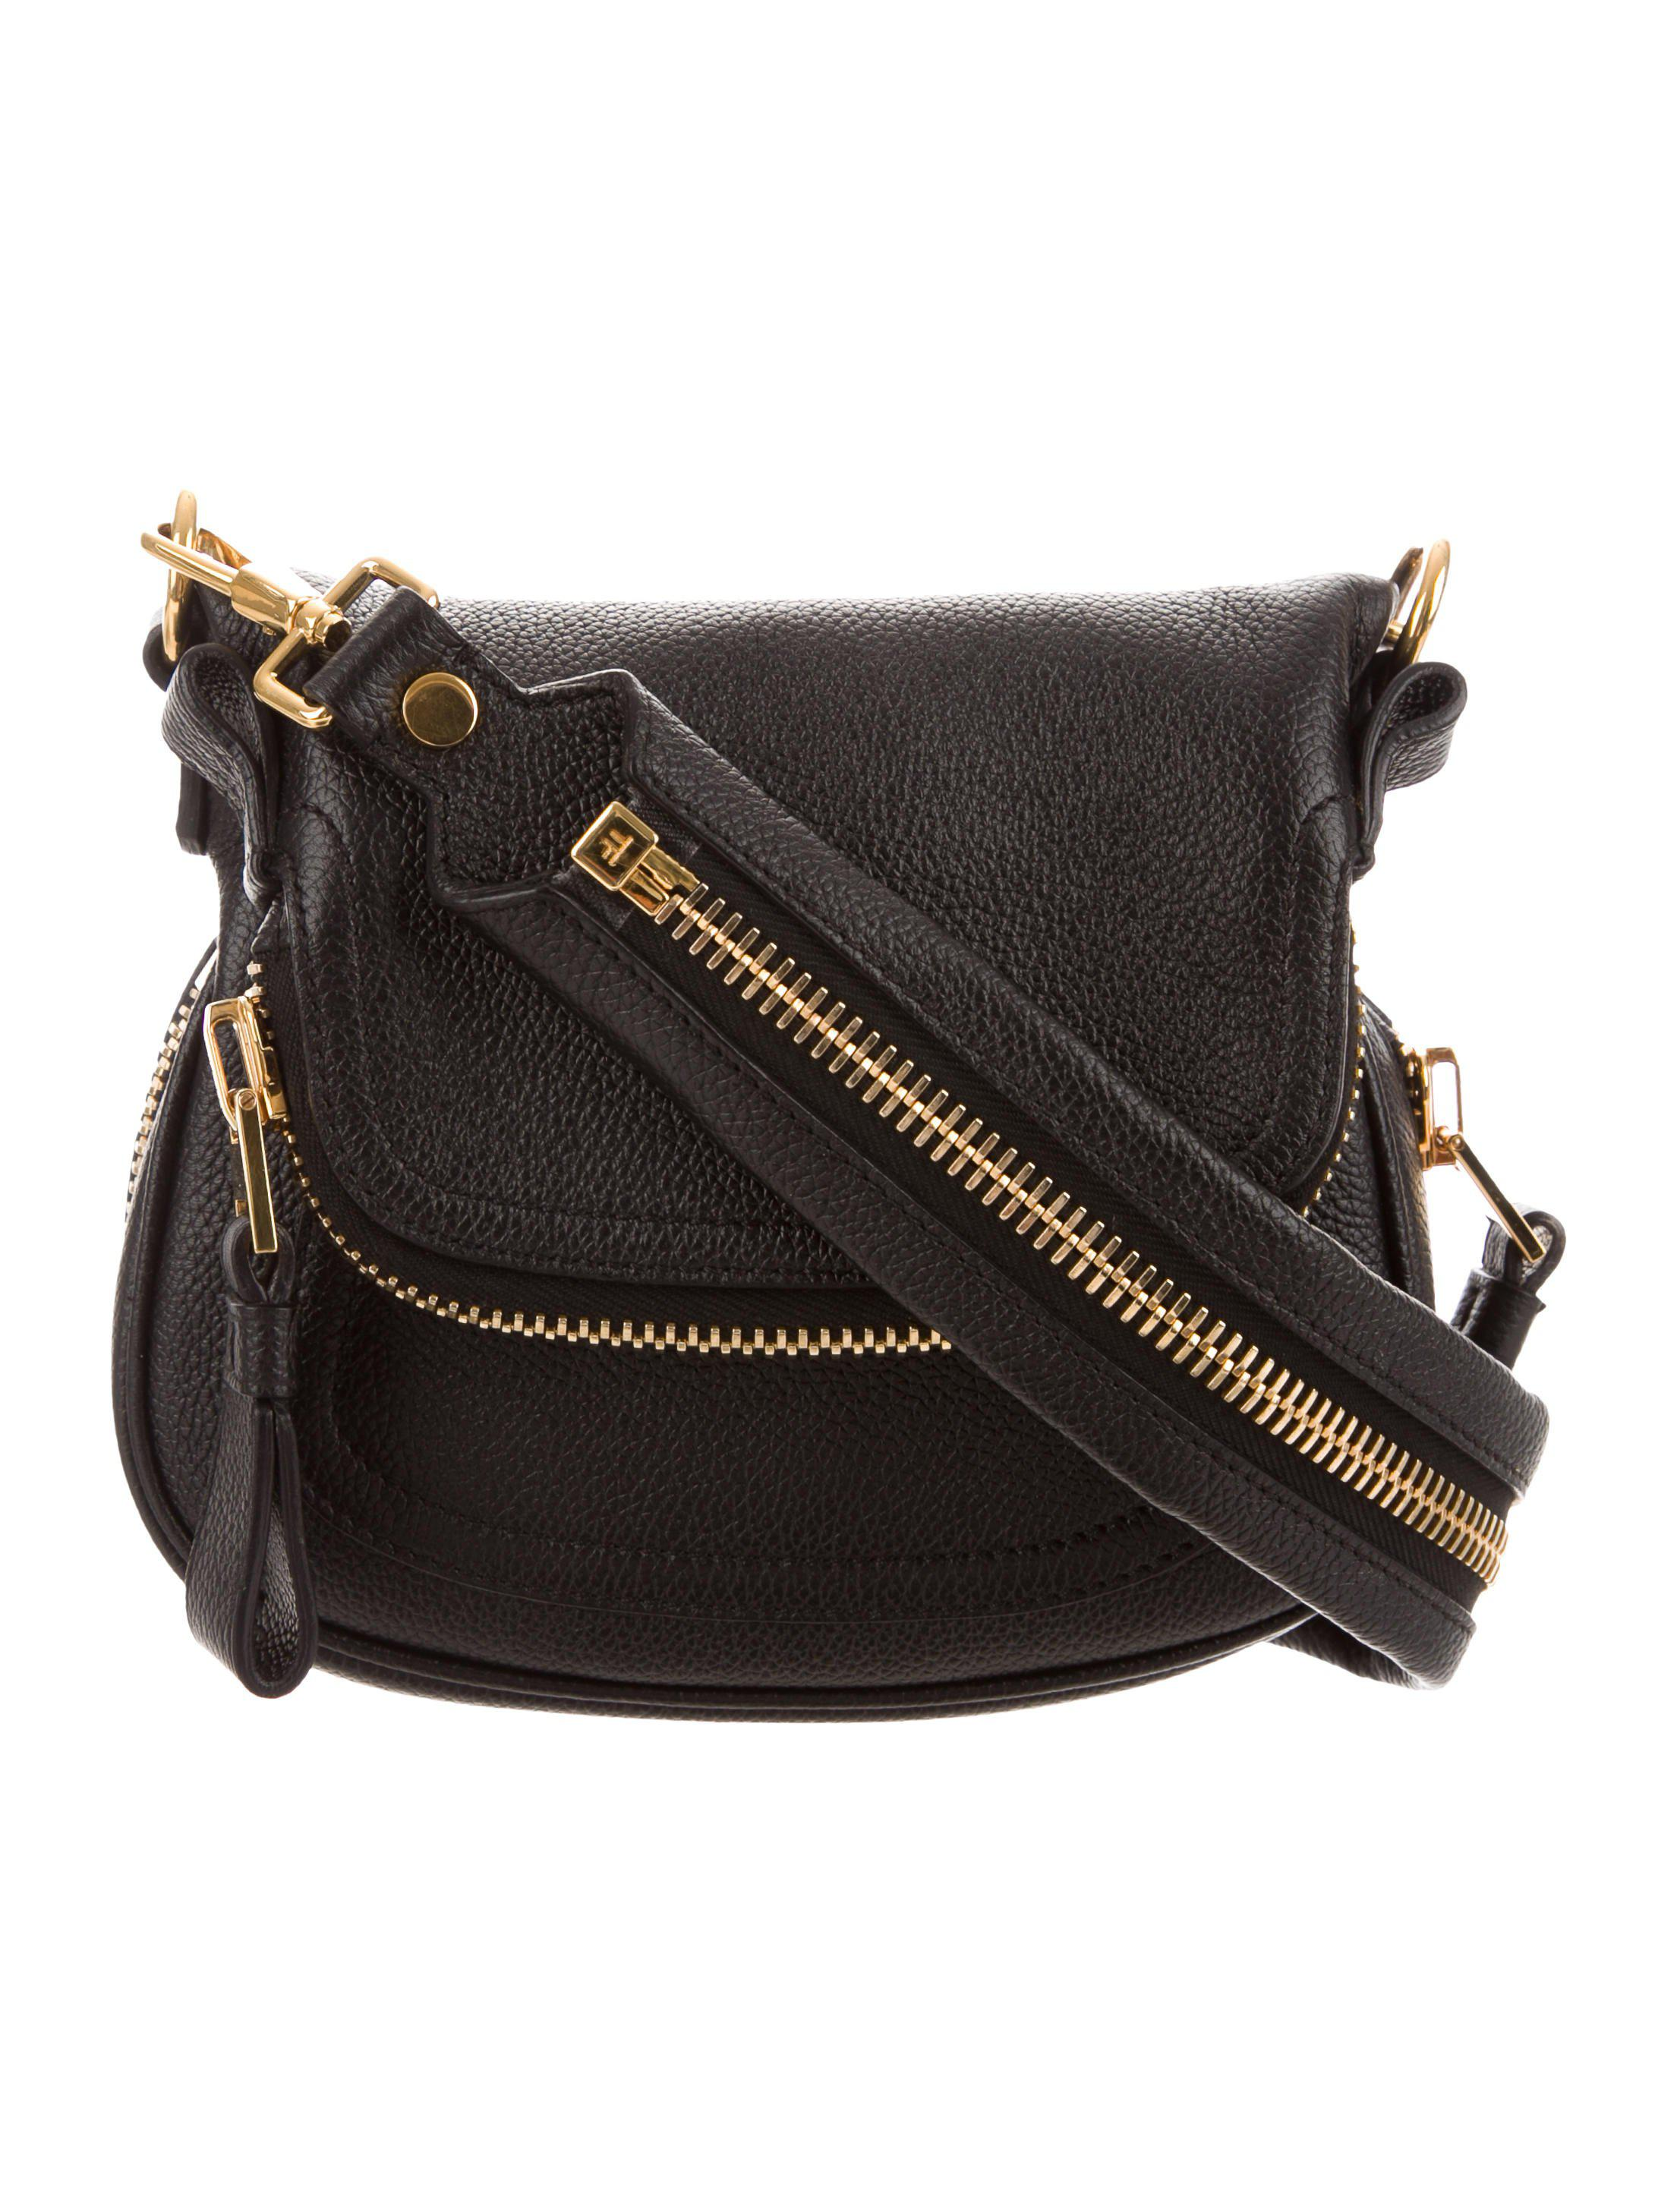 bf87bb77cc Lyst - Tom Ford Mini Jennifer Crossbody Bag Black in Metallic